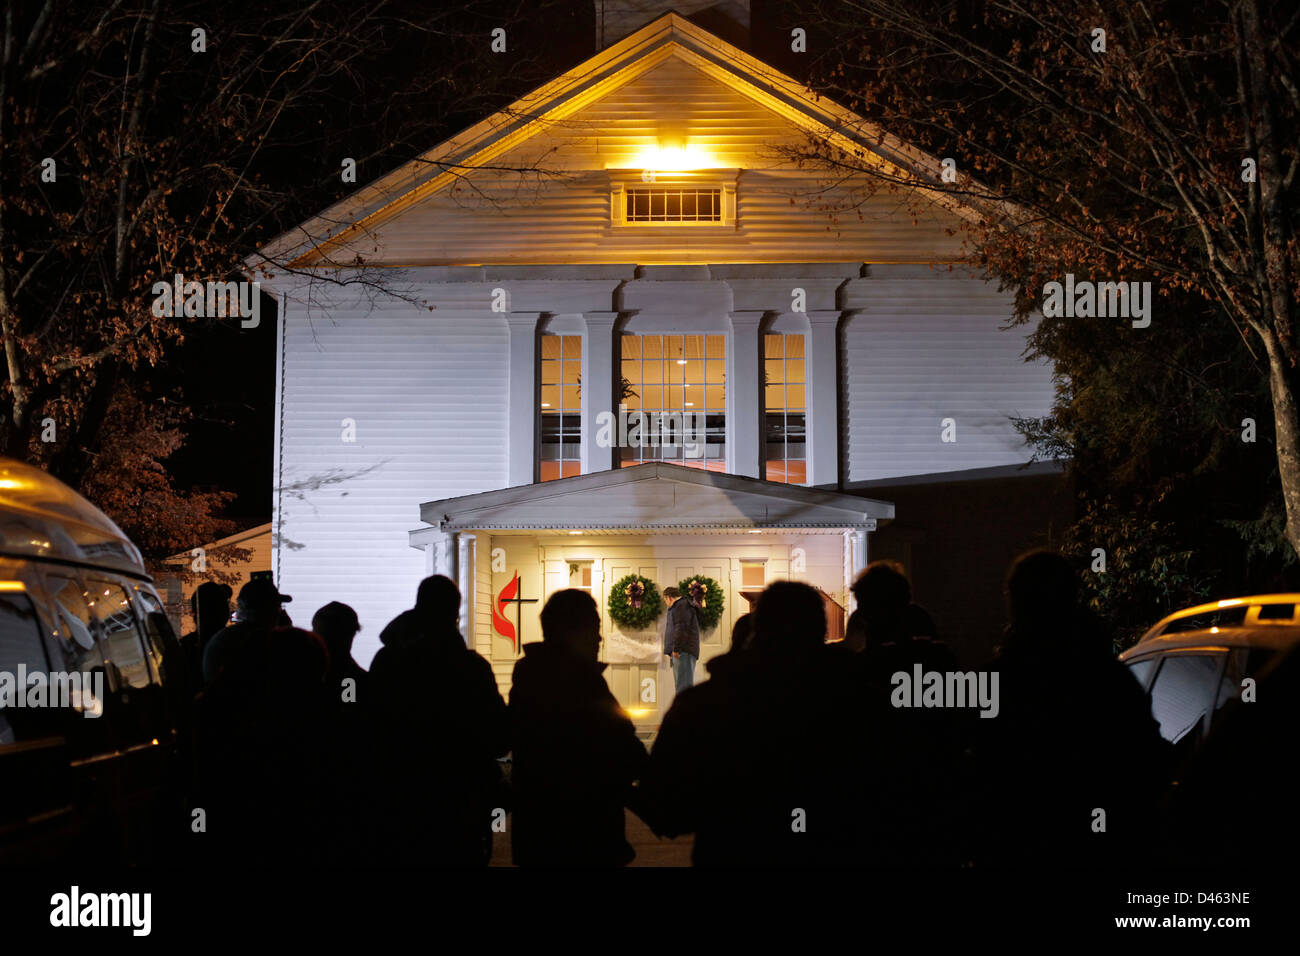 Newton, CT - Friday 12/14/2012 - The hours after the Sandy Hook Elementary School shootings. Stock Photo